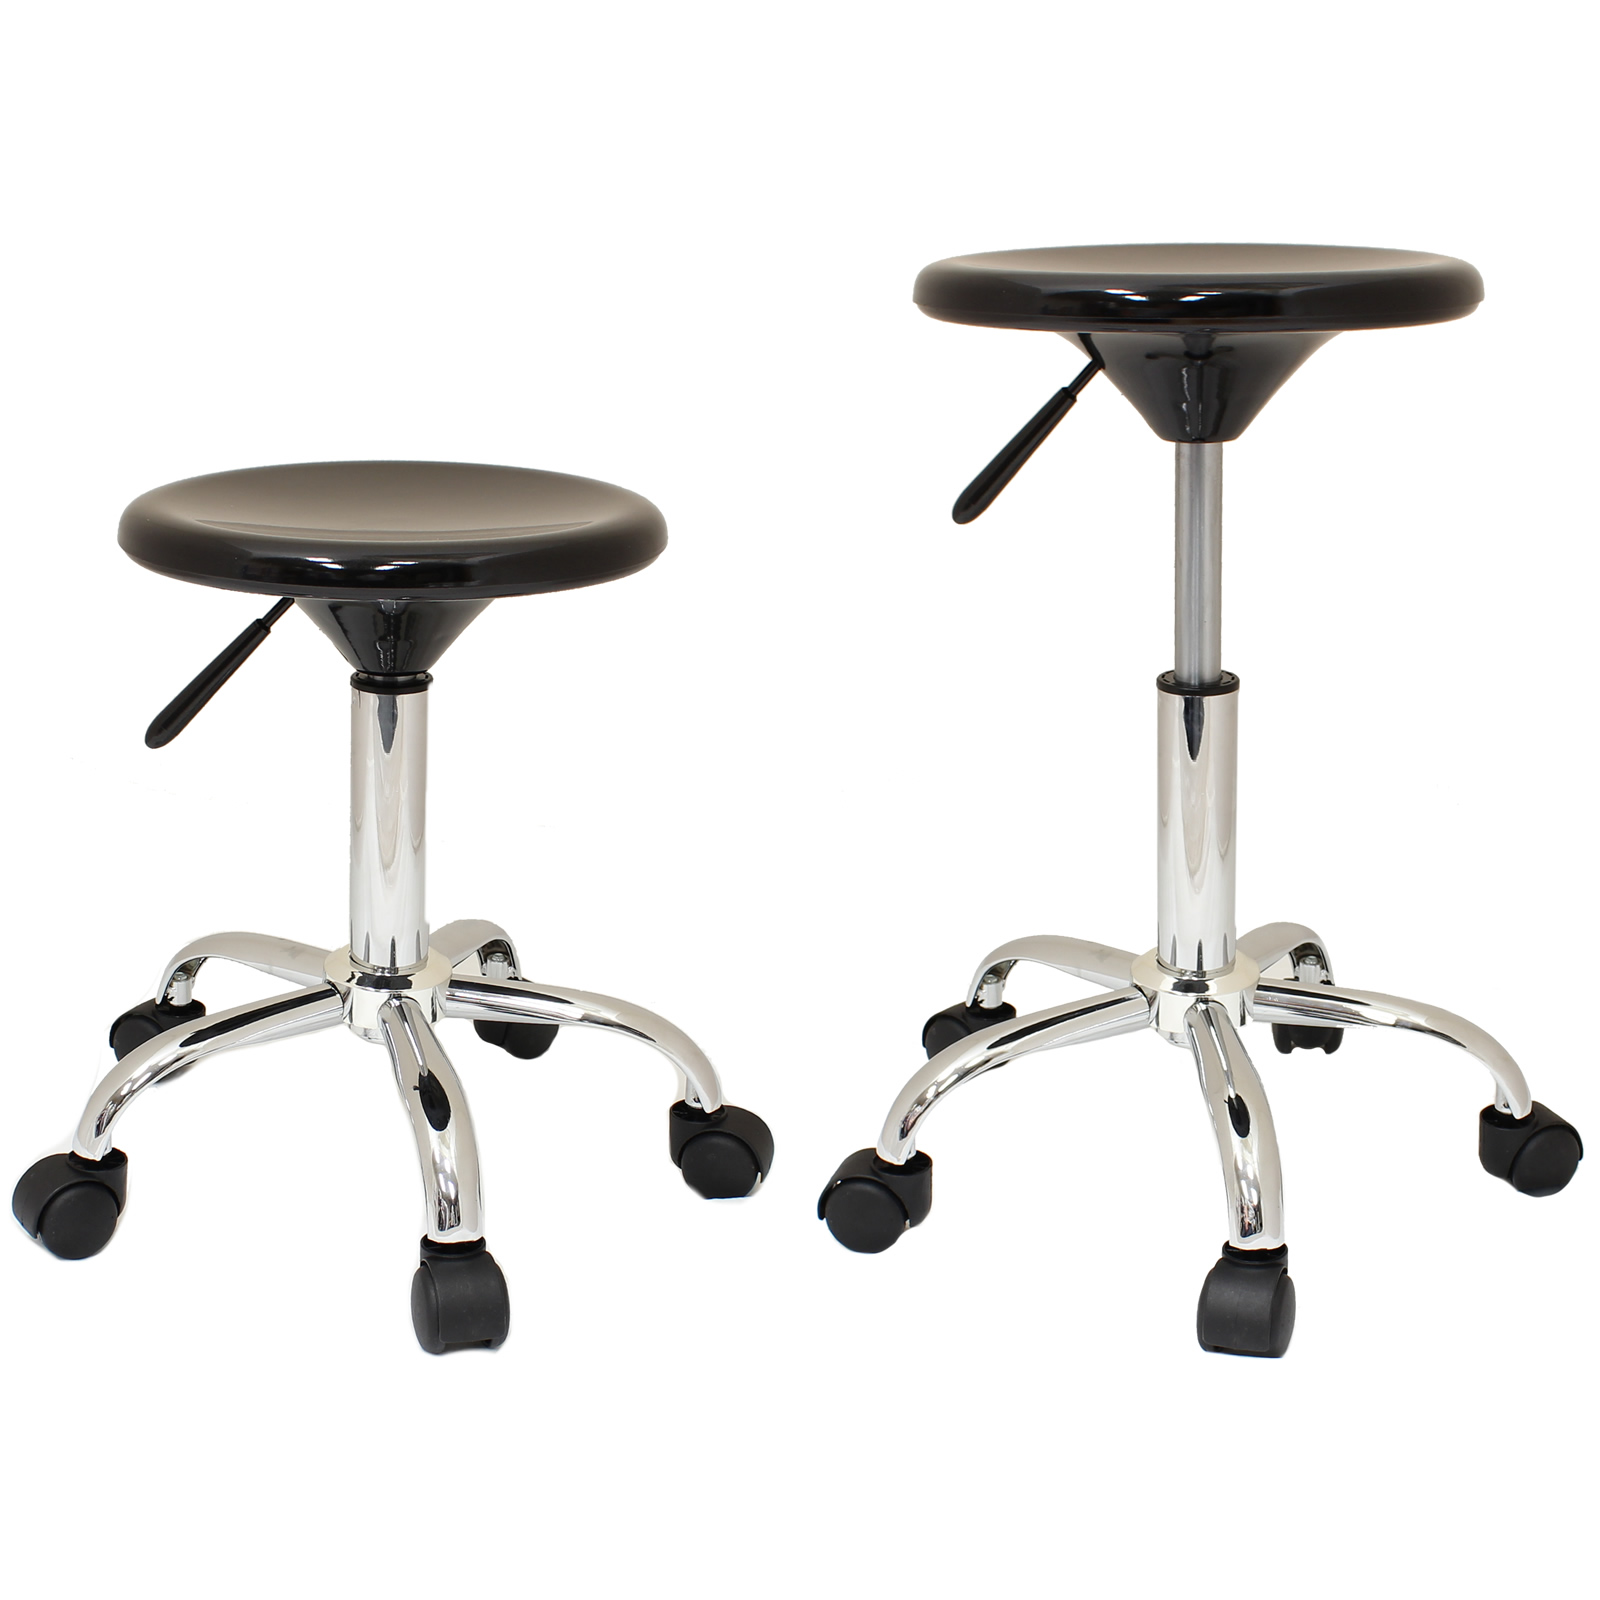 Black Adjustable Swivel Chair Stool Tattoo Nail Technician